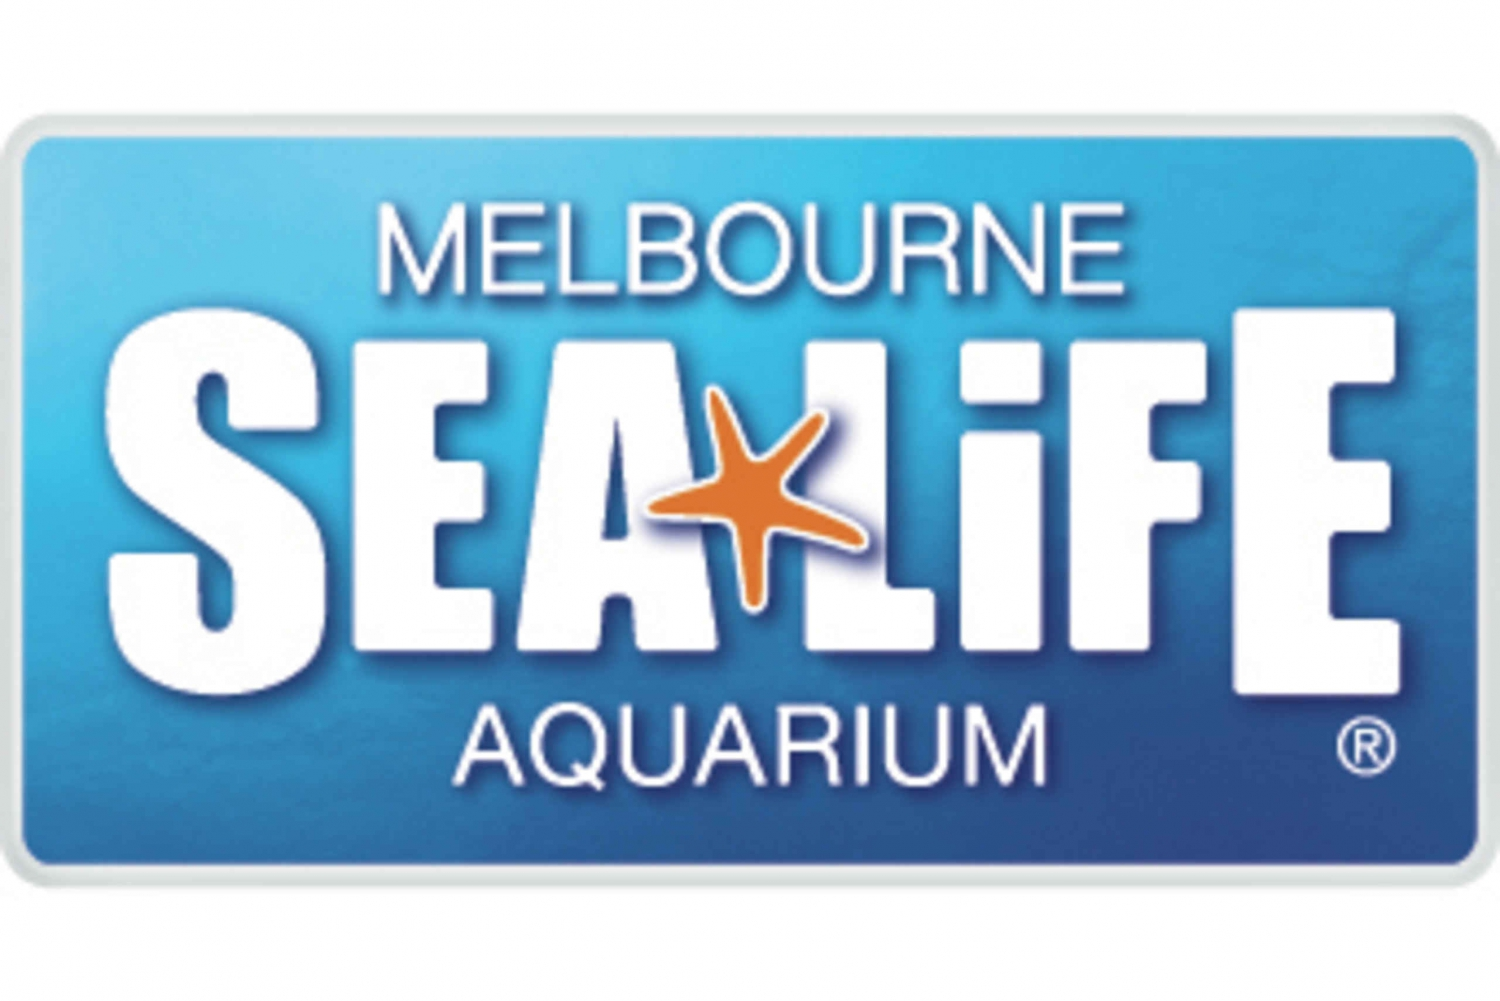 Sea Life Melbourne Aquarium Entrance Ticket